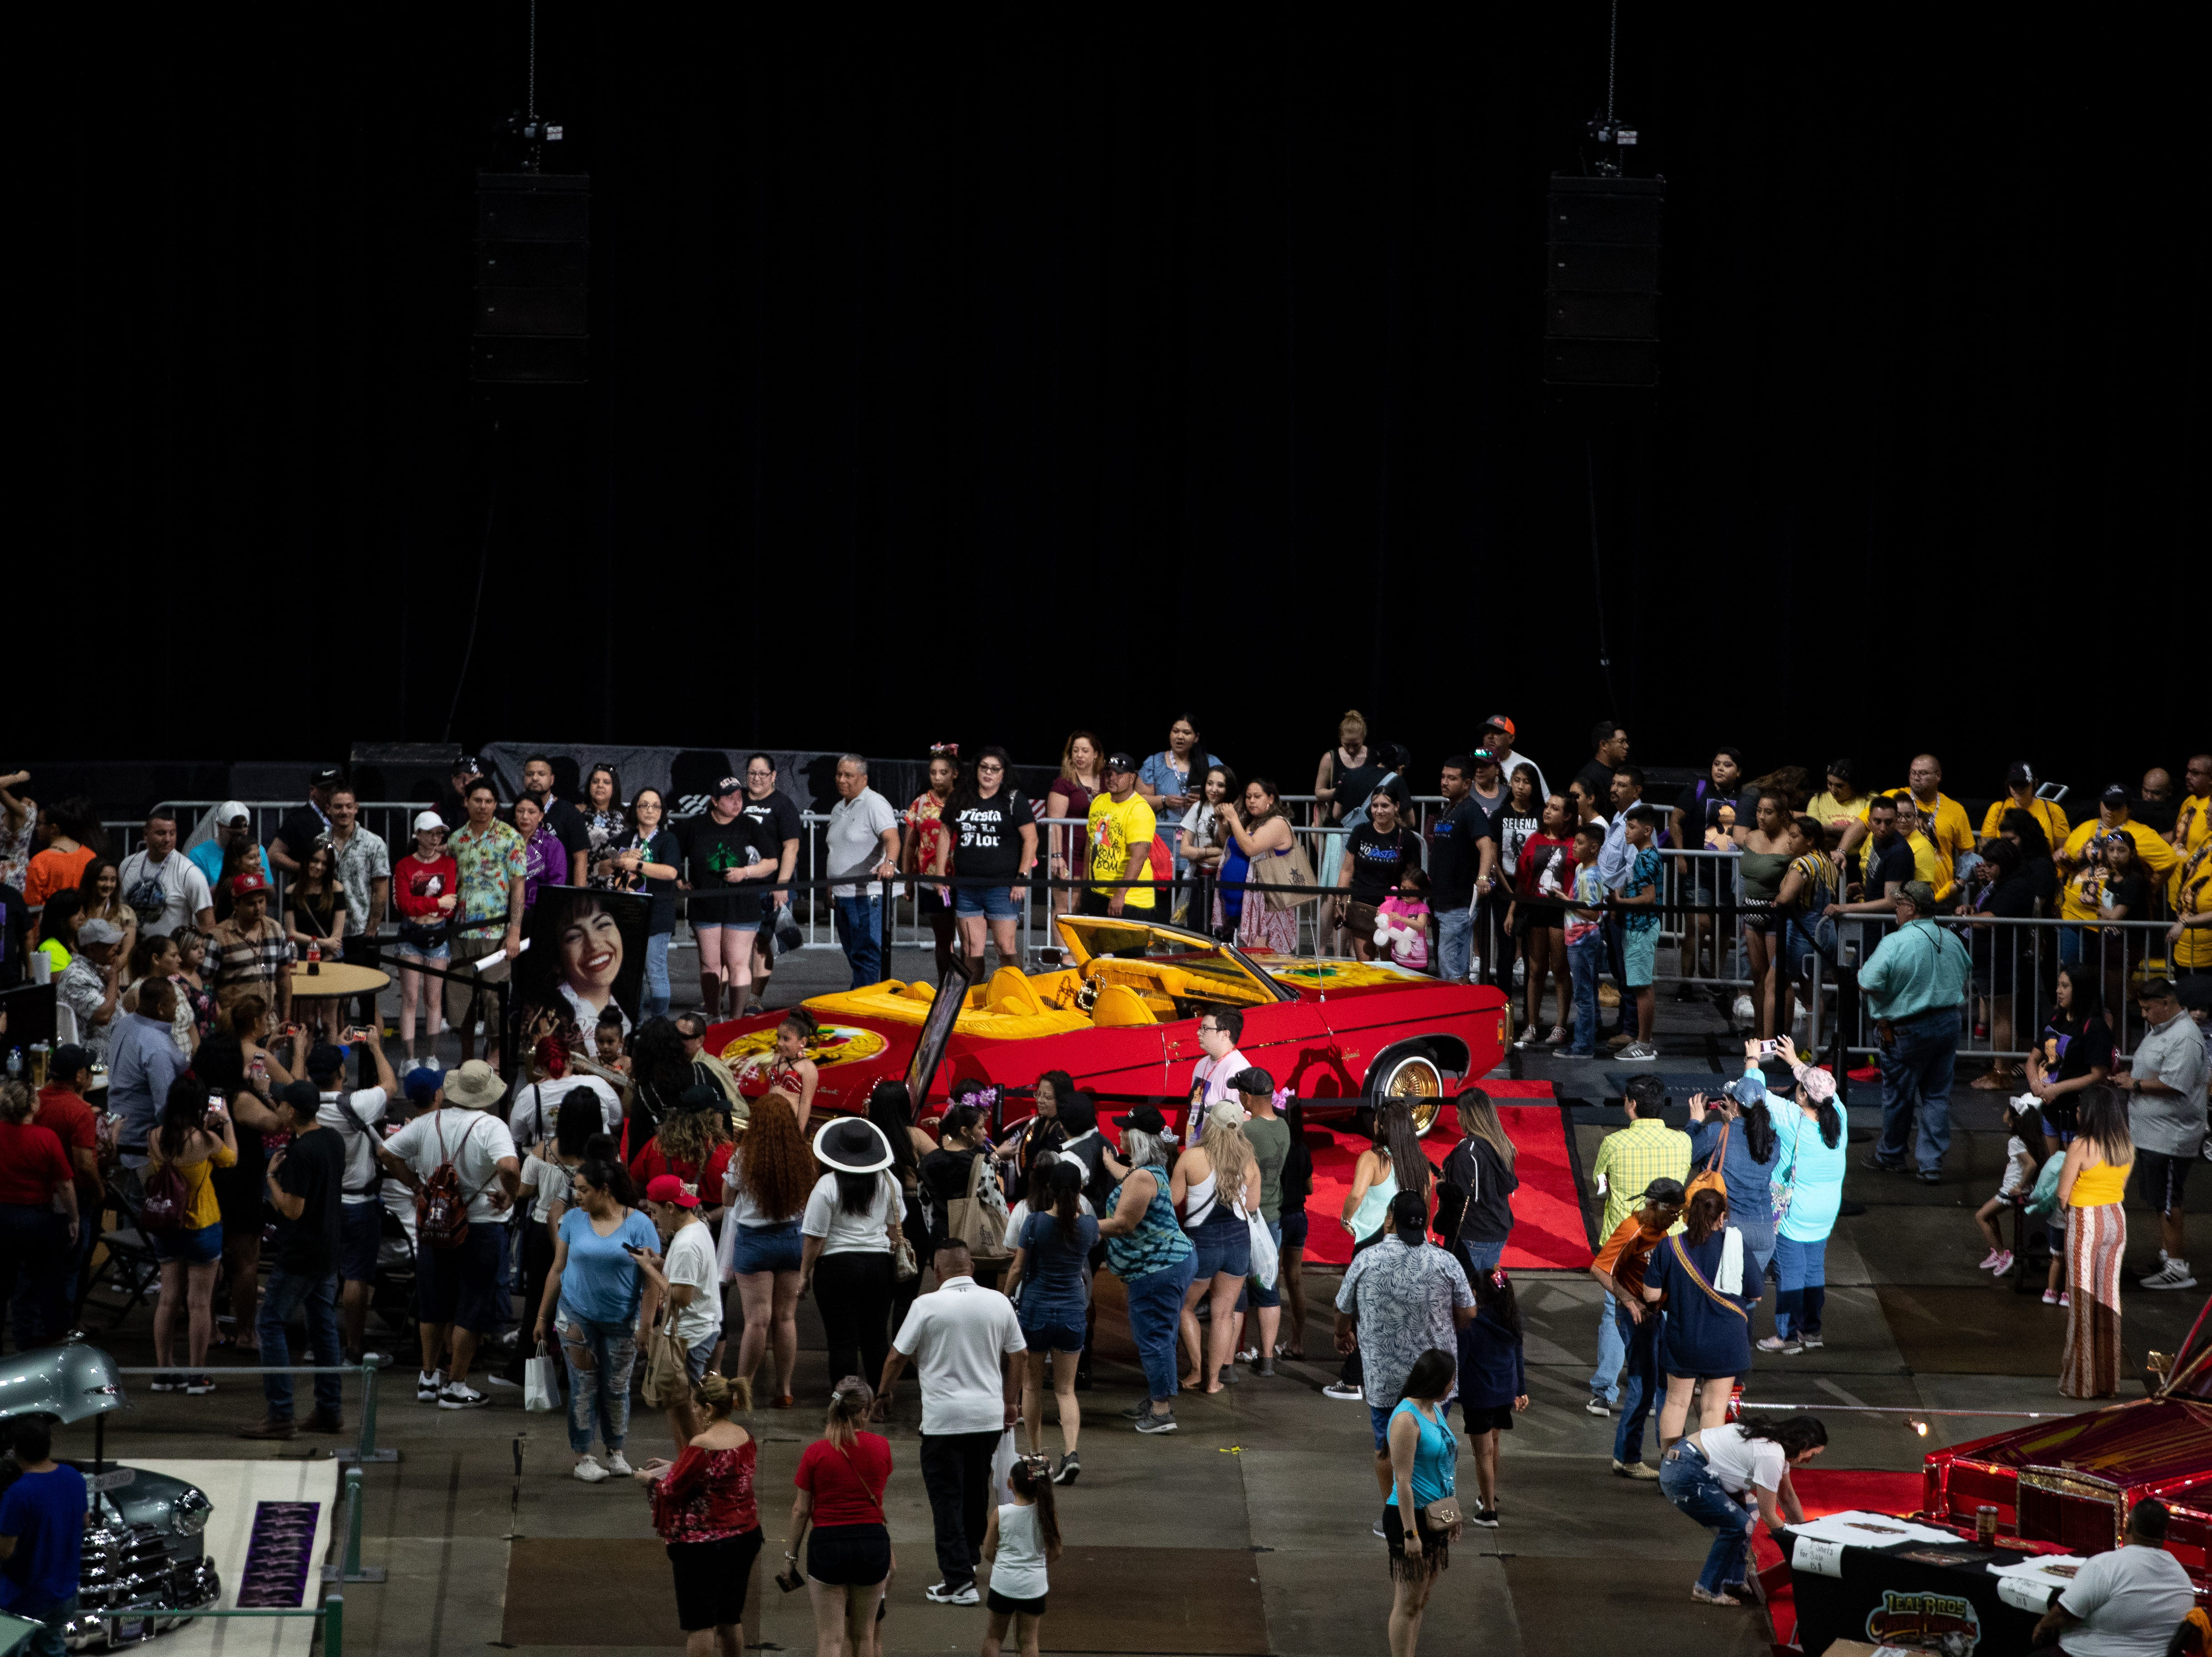 """People wait inline to take a photo with the """"Anything for the Selenas"""" car during the Lowrider Extravaganza at the American Bank Center on the second day of Fiesta de la Flor on Saturday, April 13, 2019."""